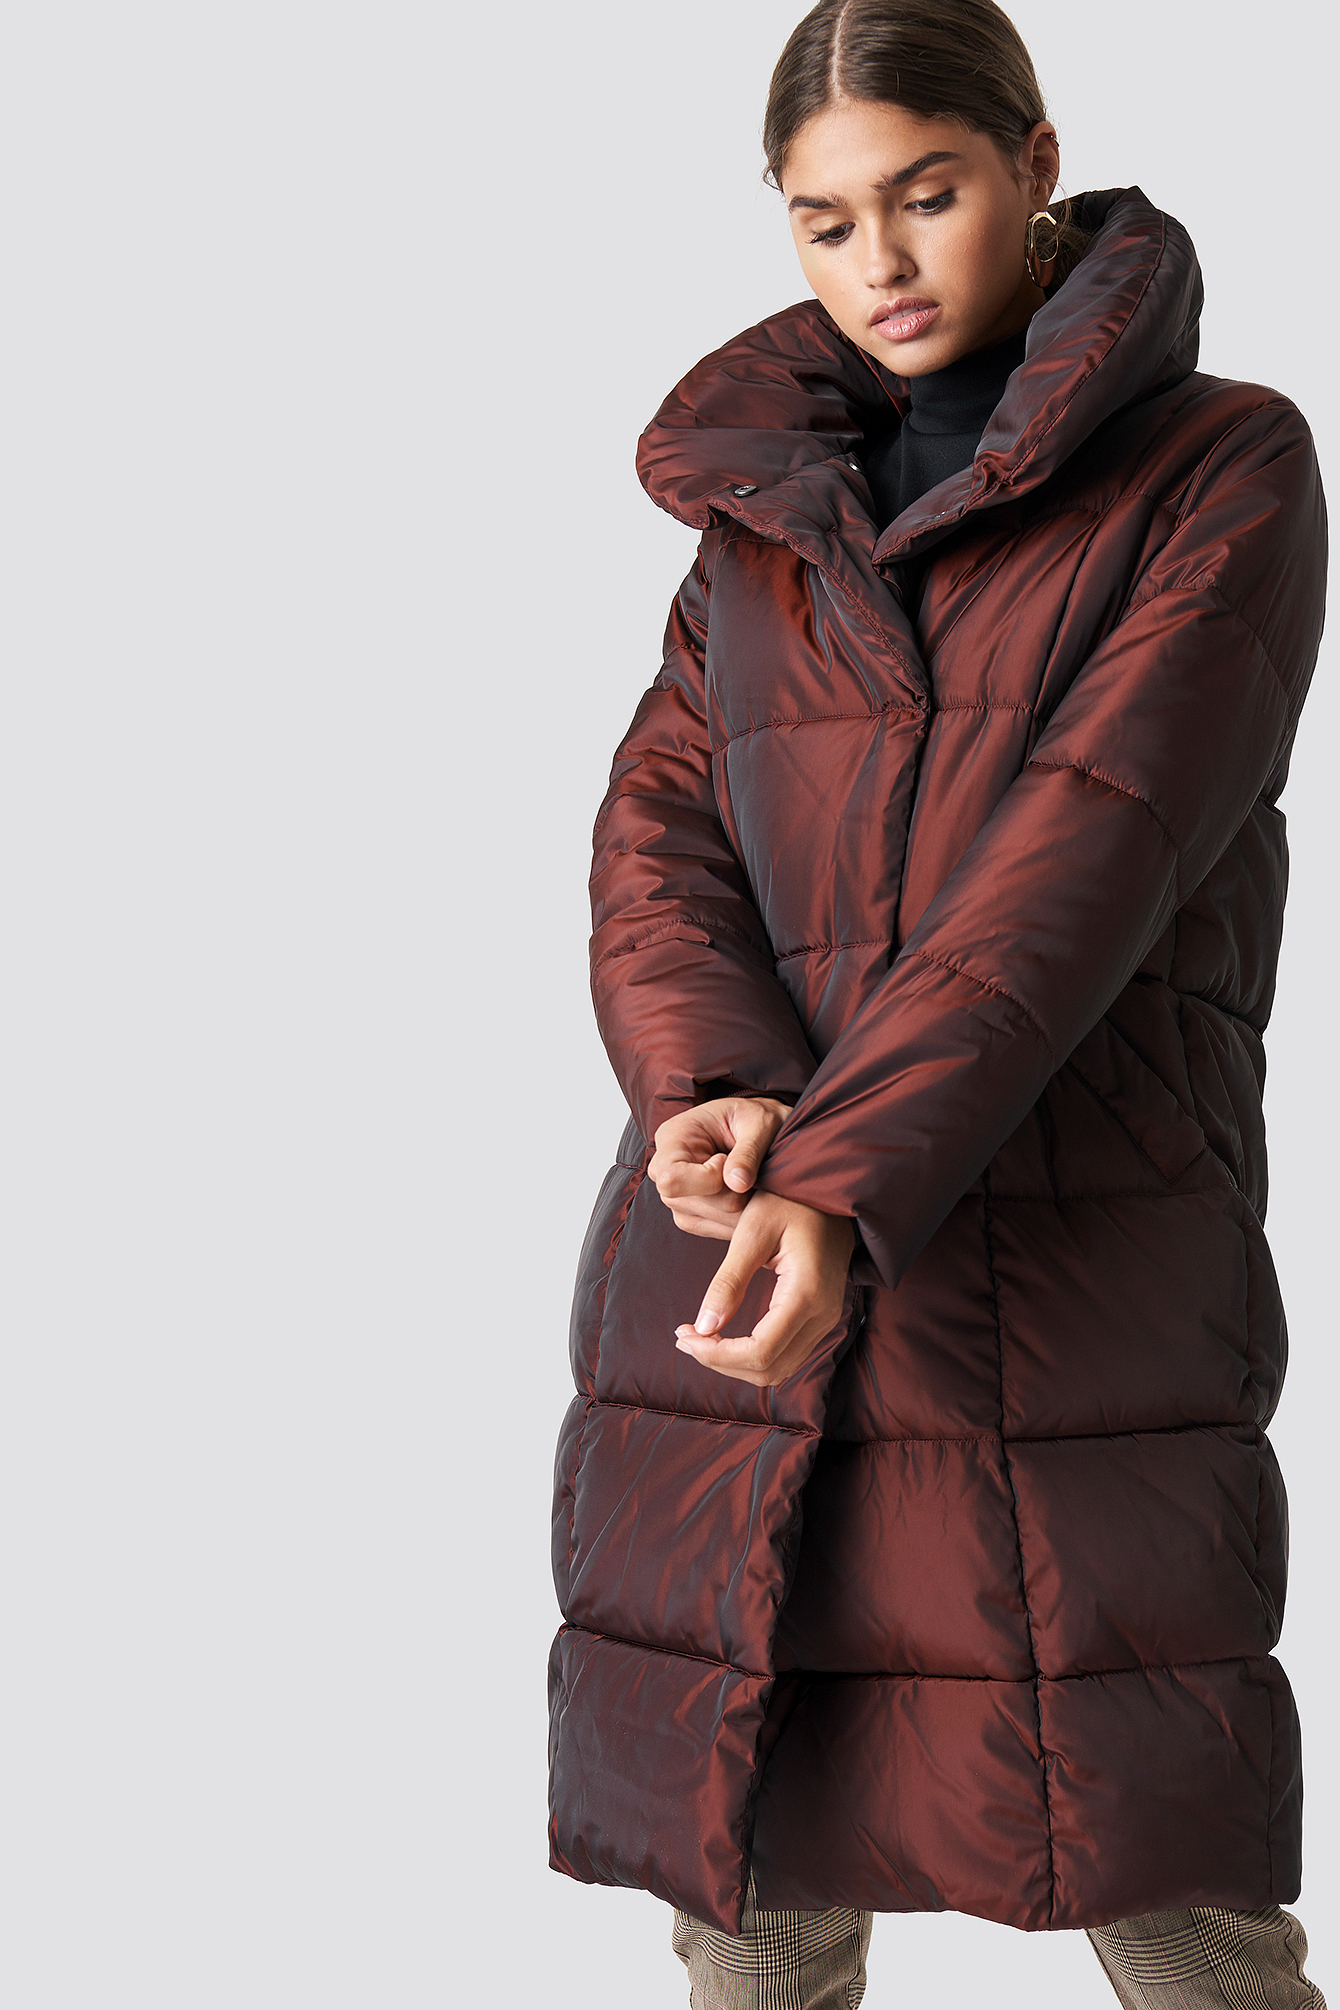 na-kd -  Shawl Collar Shiny Padded Jacket - Brown,Red